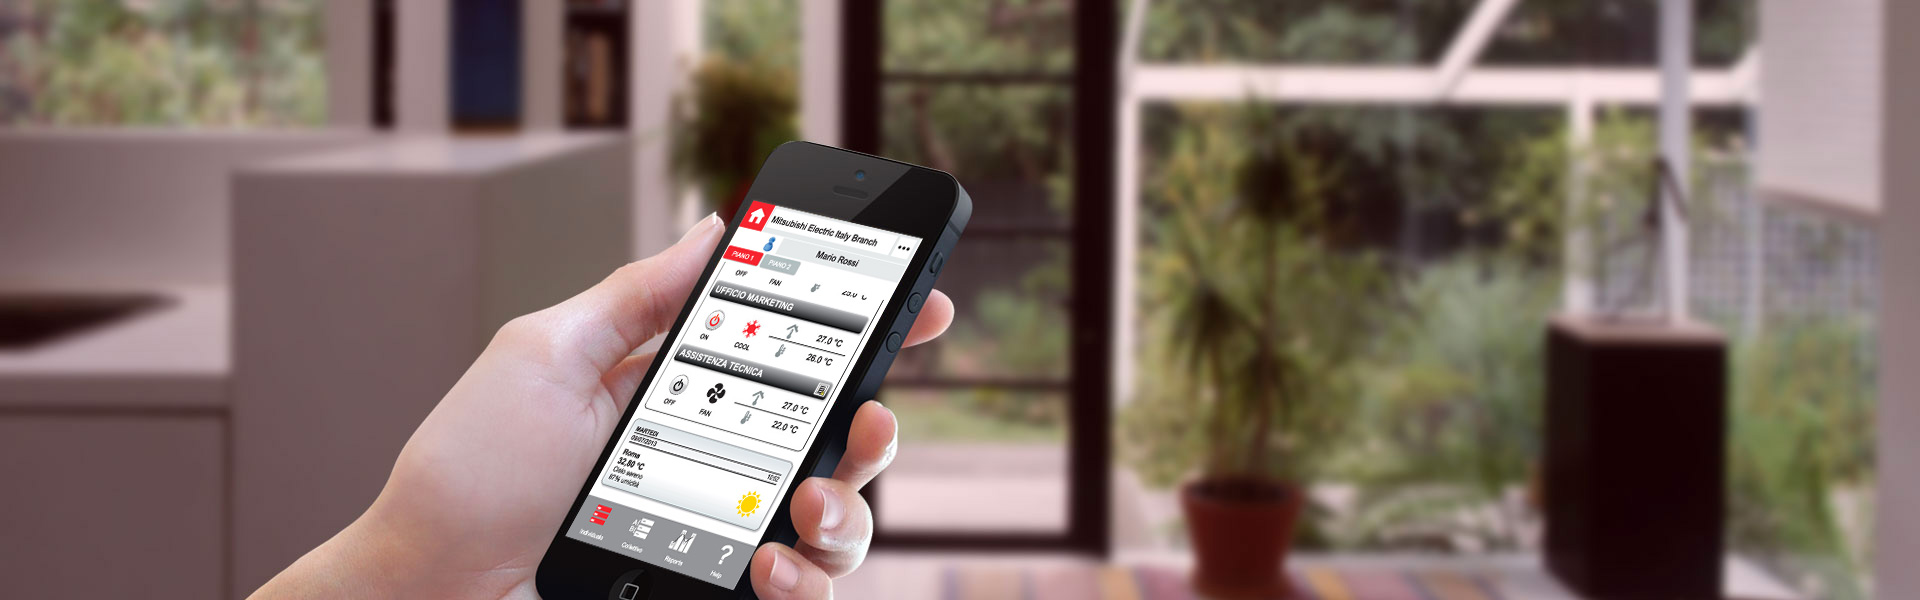 Access through your smartphone or tablet wherever you are!